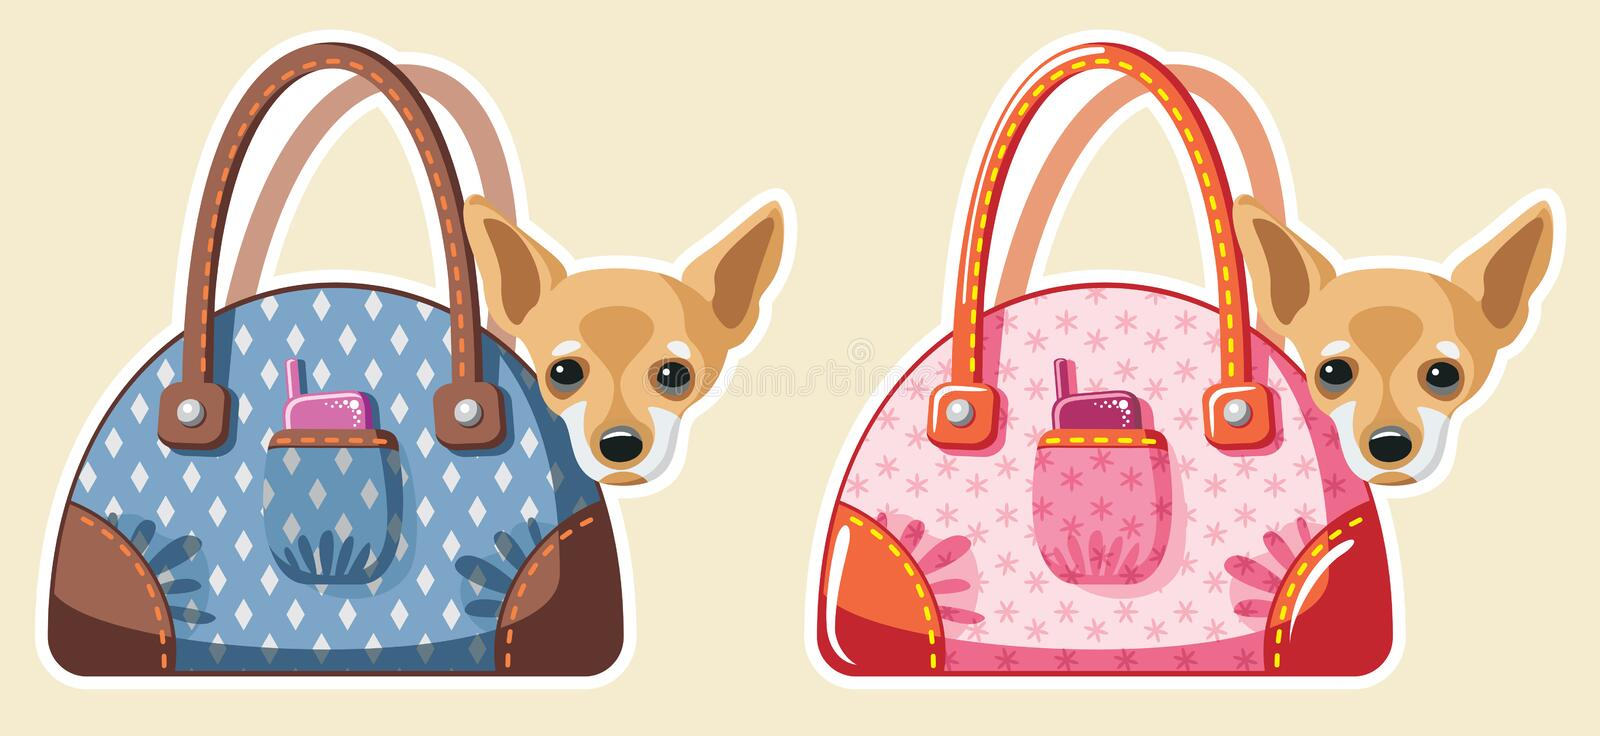 Dogs in bags vector illustration